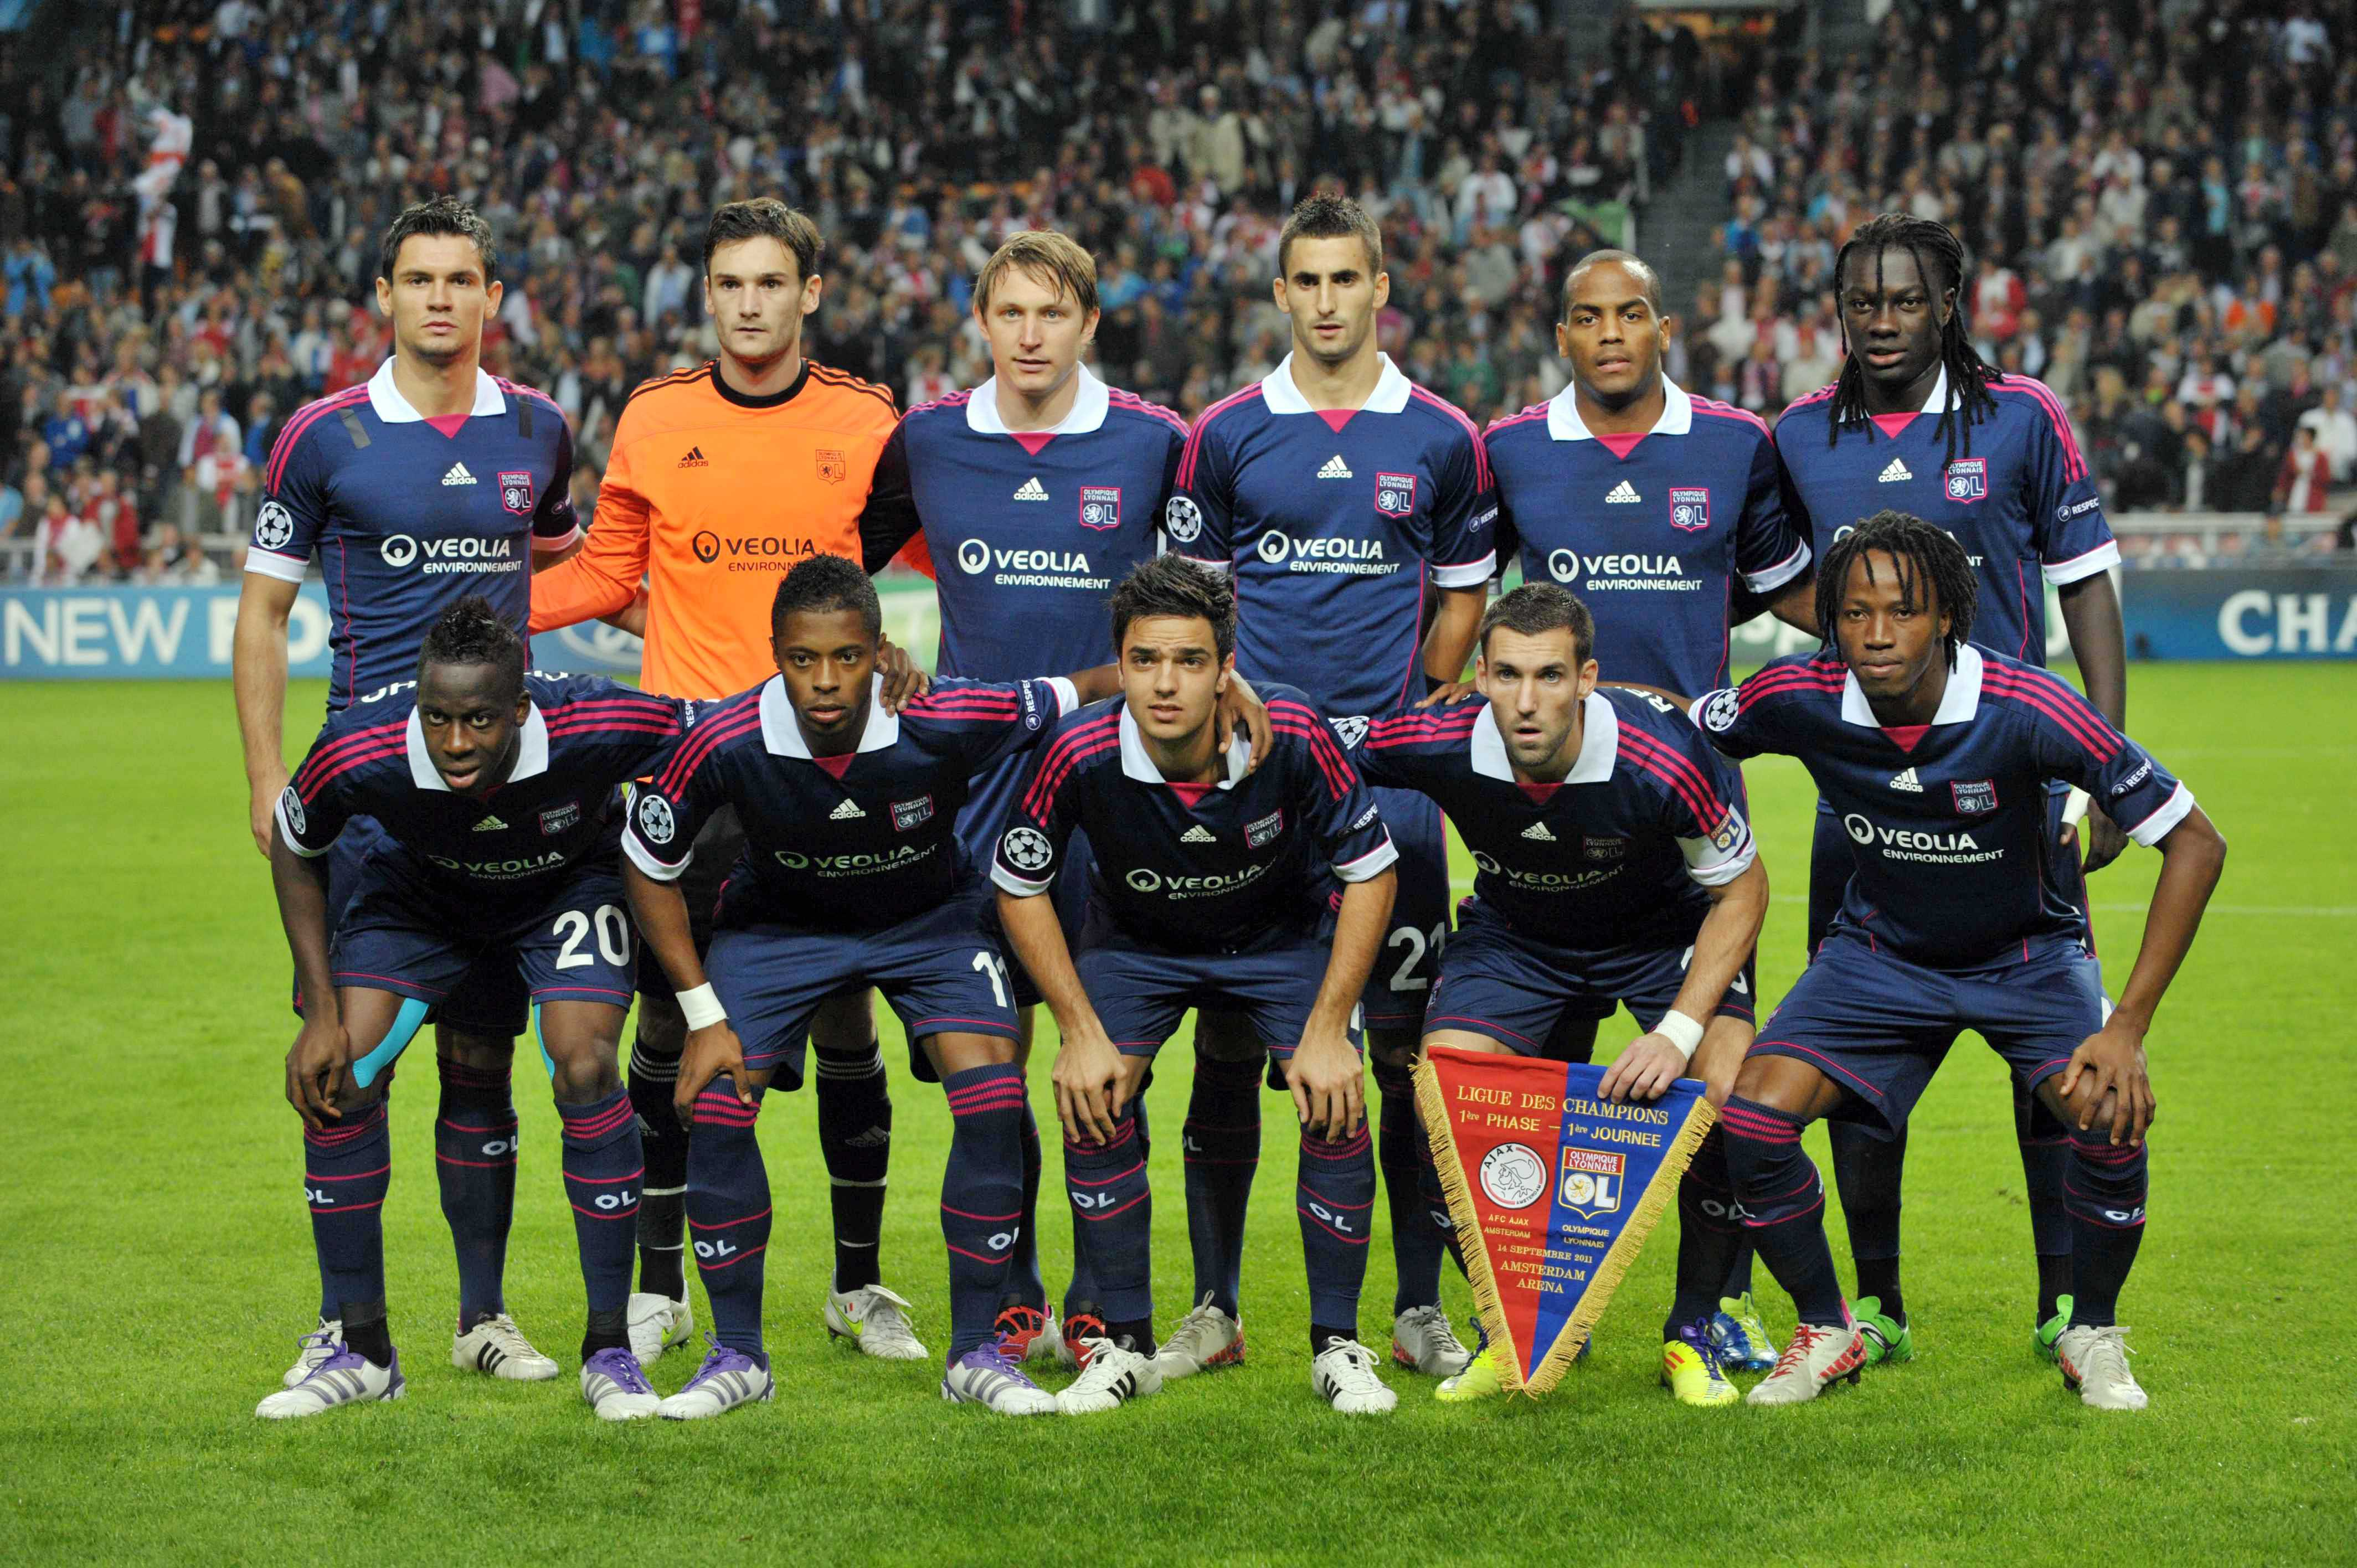 Lyon increased the budget with 50 million euros